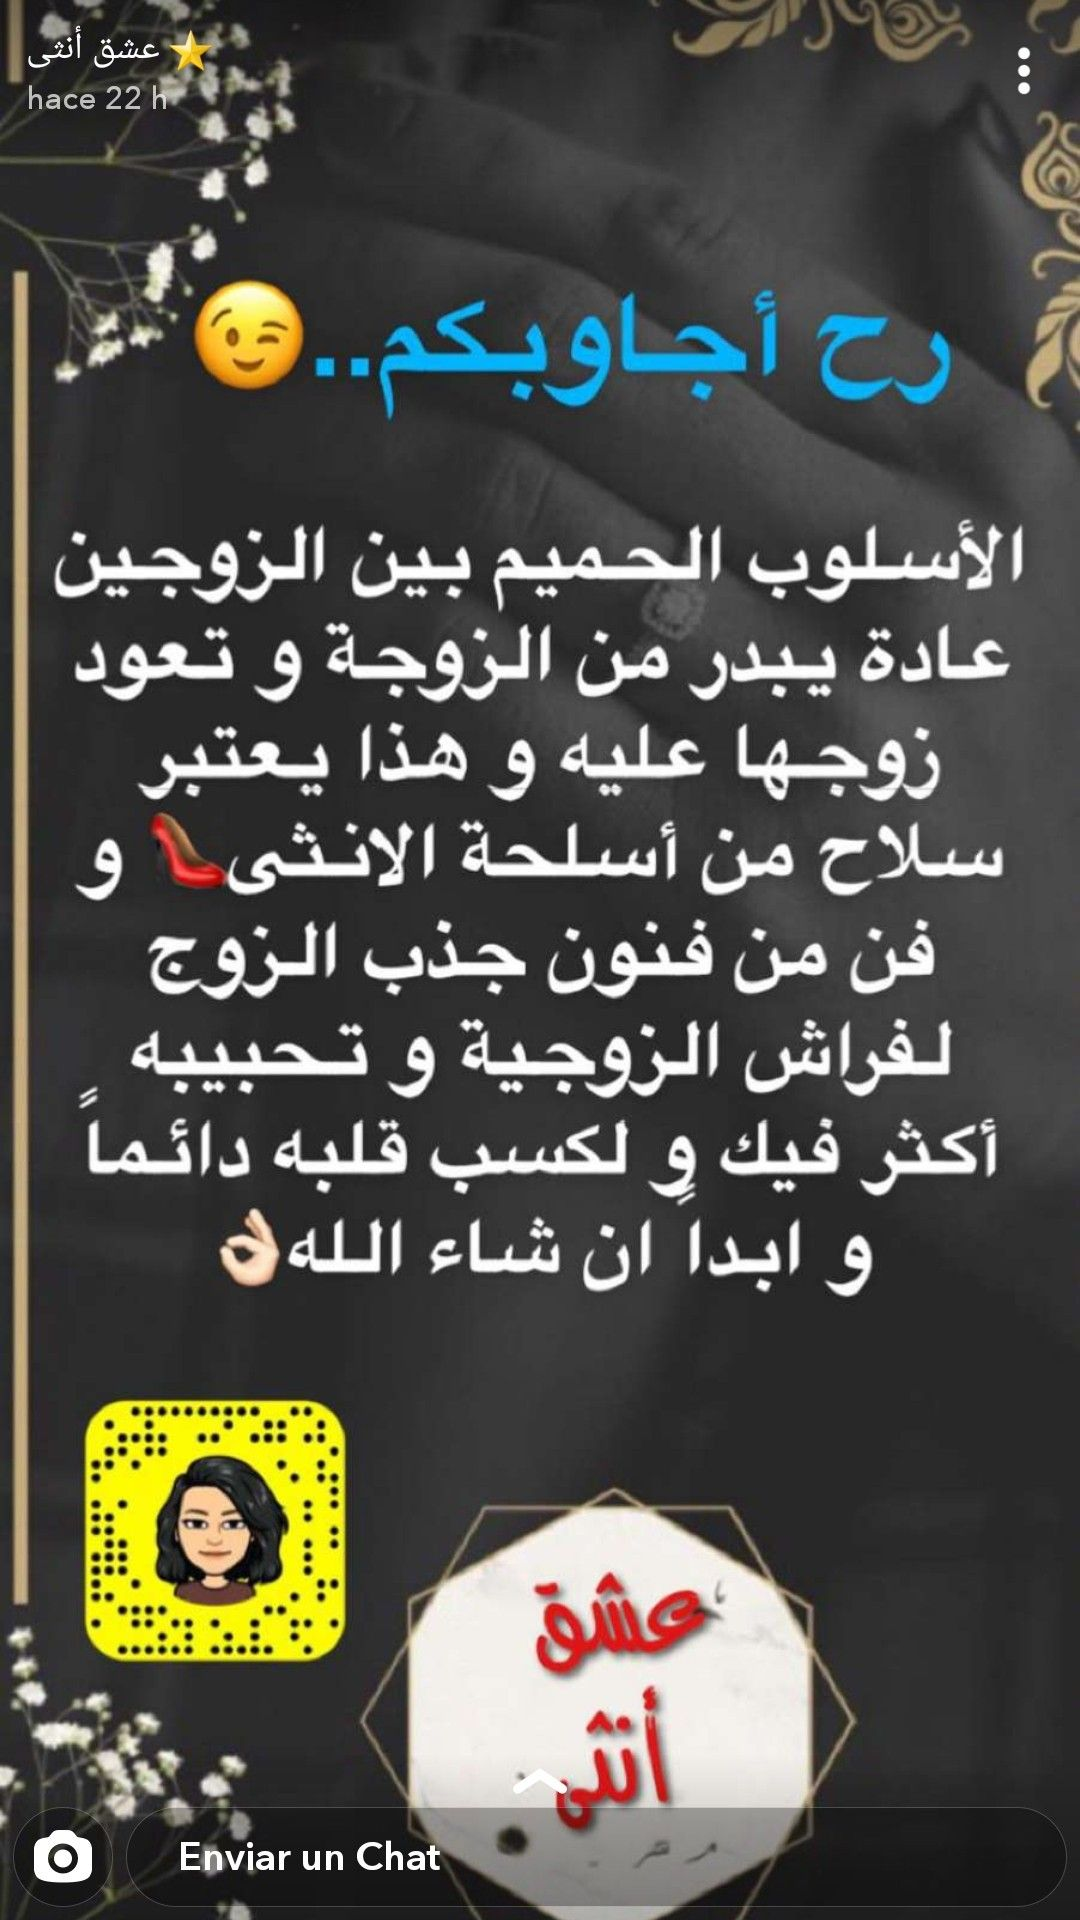 Pin By Alotaibi On سنابات د هند عنايه Married Advice Marriage Life Etiquette And Manners